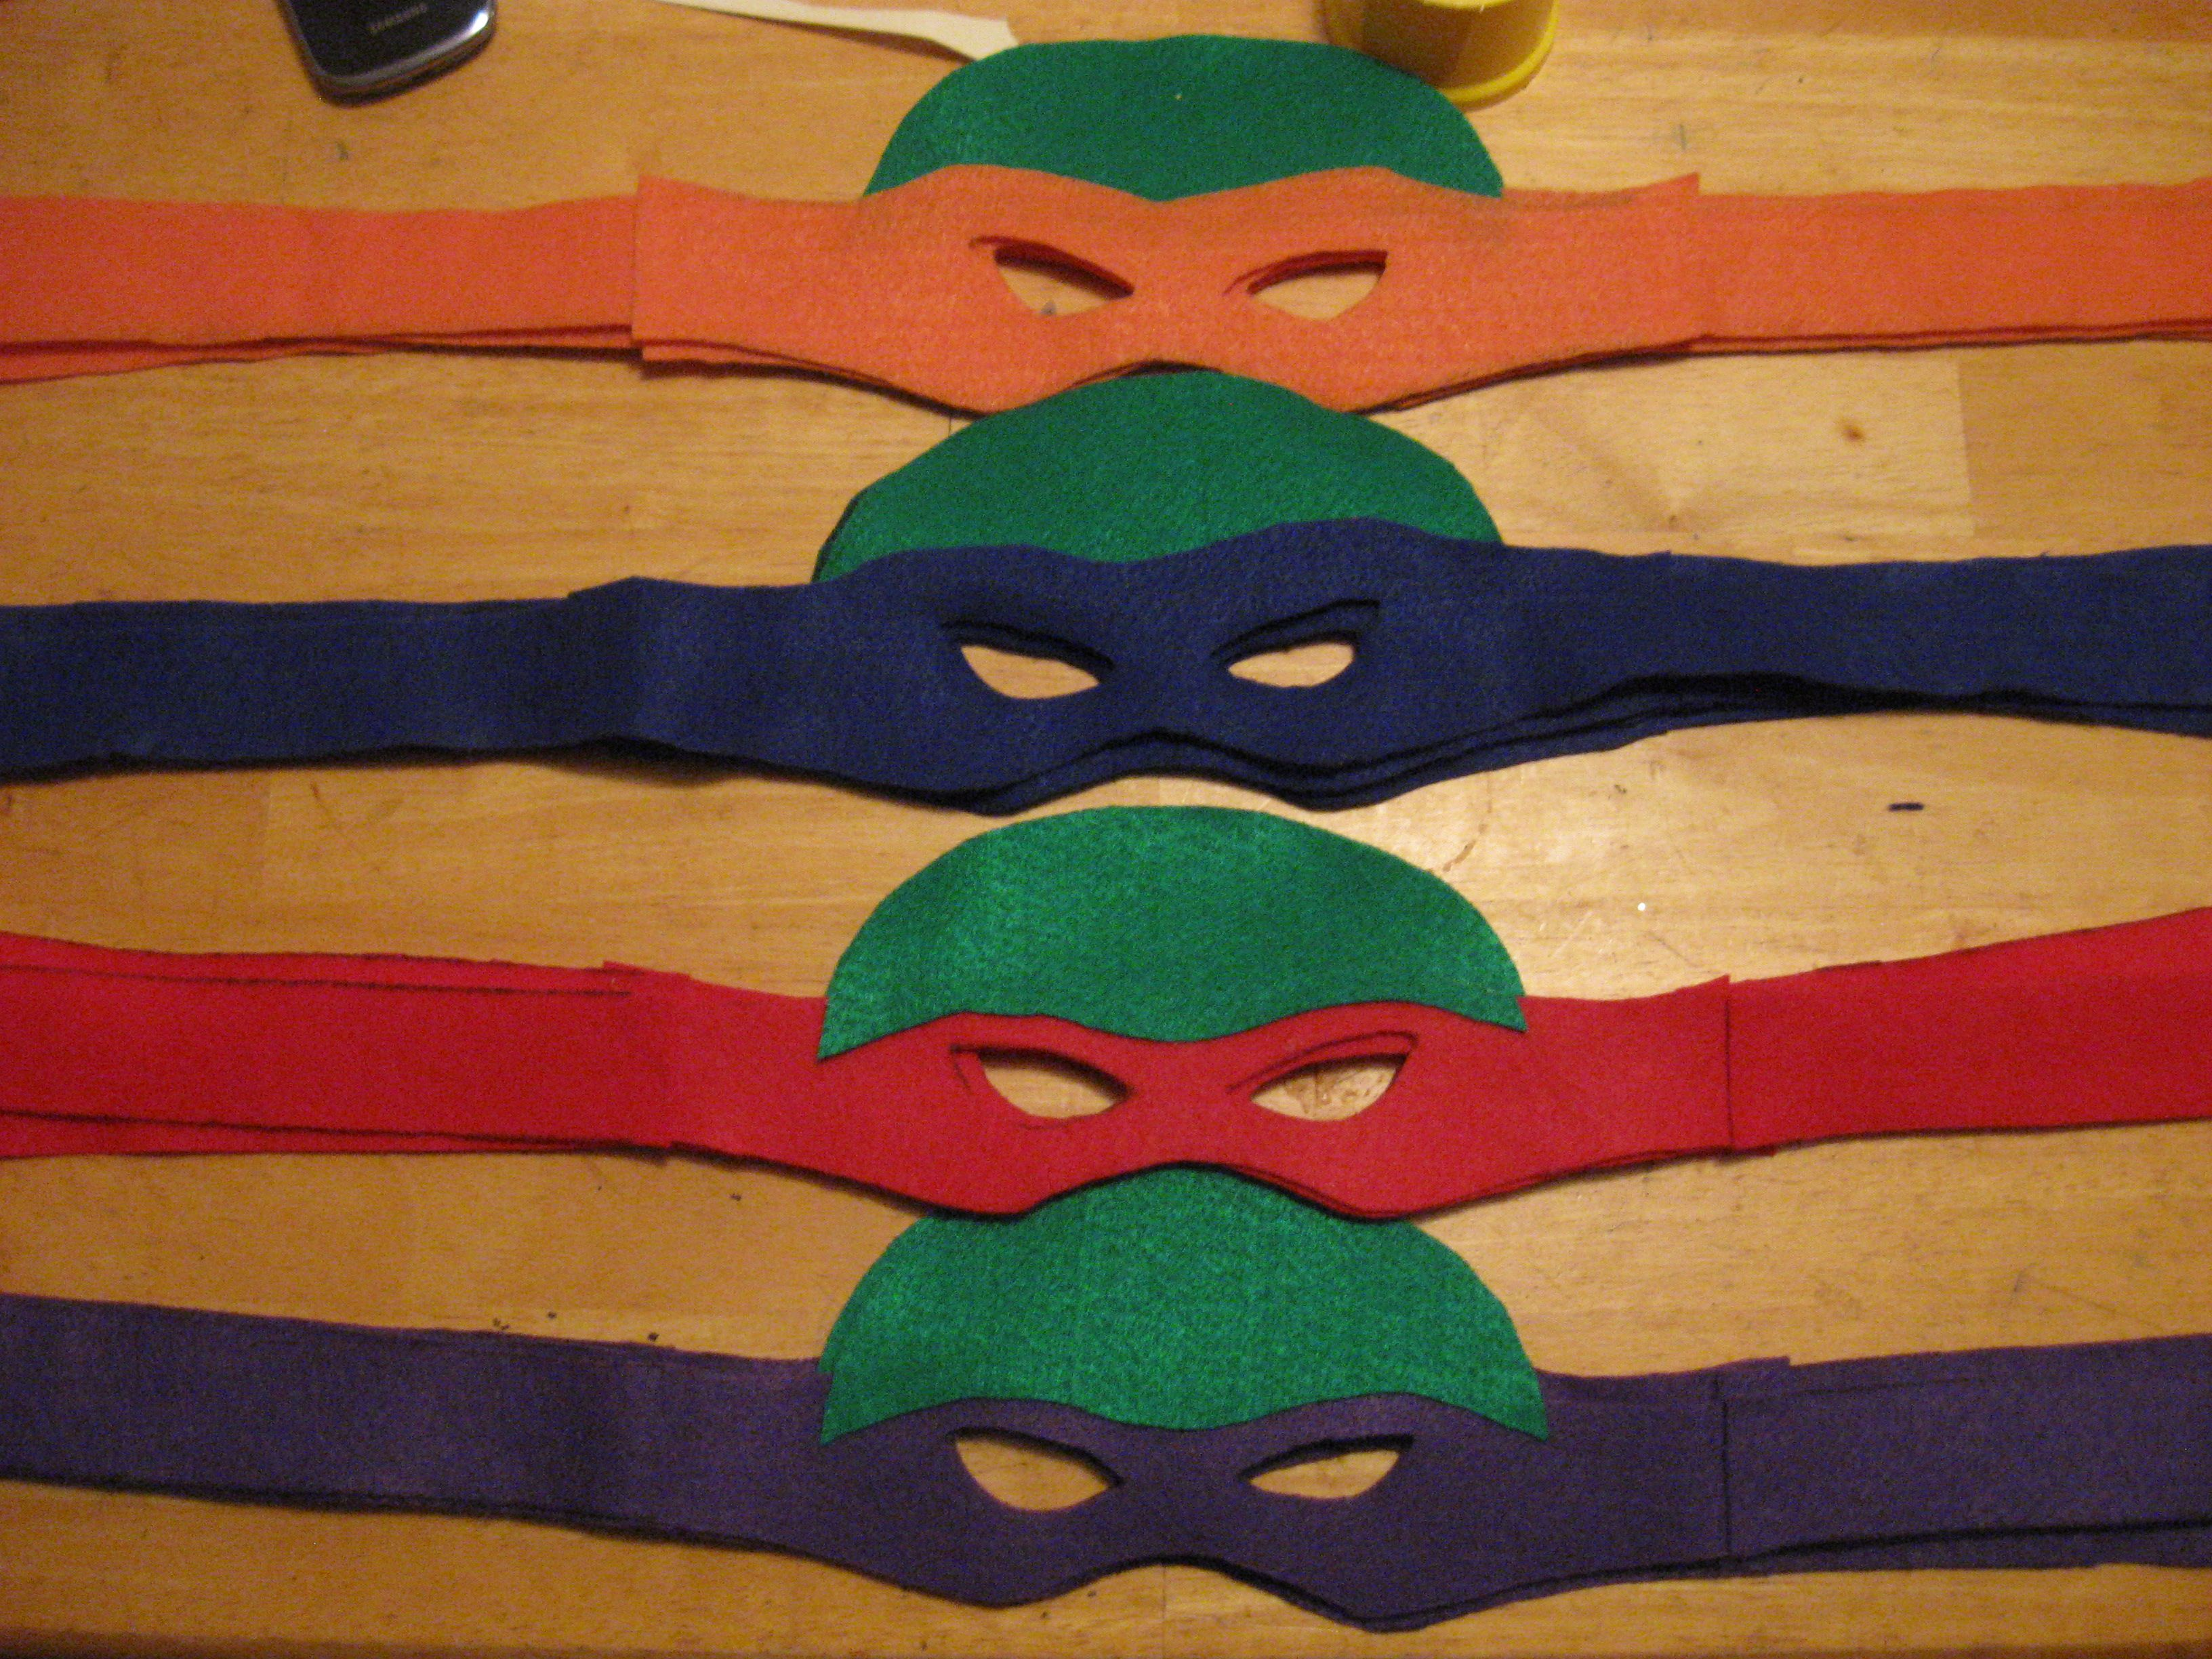 TMNT Mask All That Was Used Color Coordinating Felt With Green Glued To Each